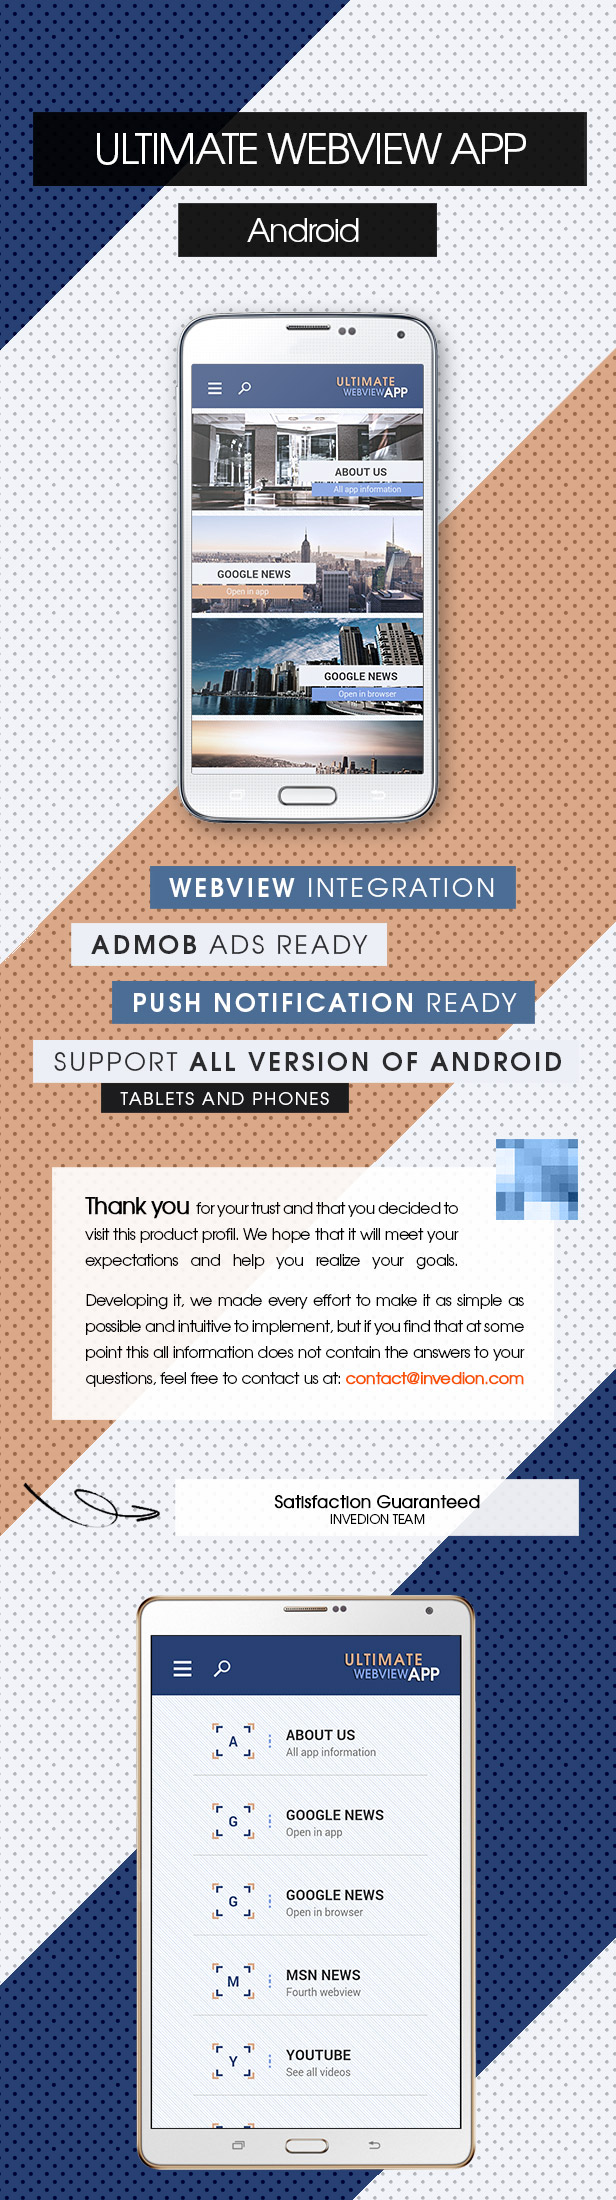 Ultimate Webview App - Android [ AdMob & Push Notifications ] - 2